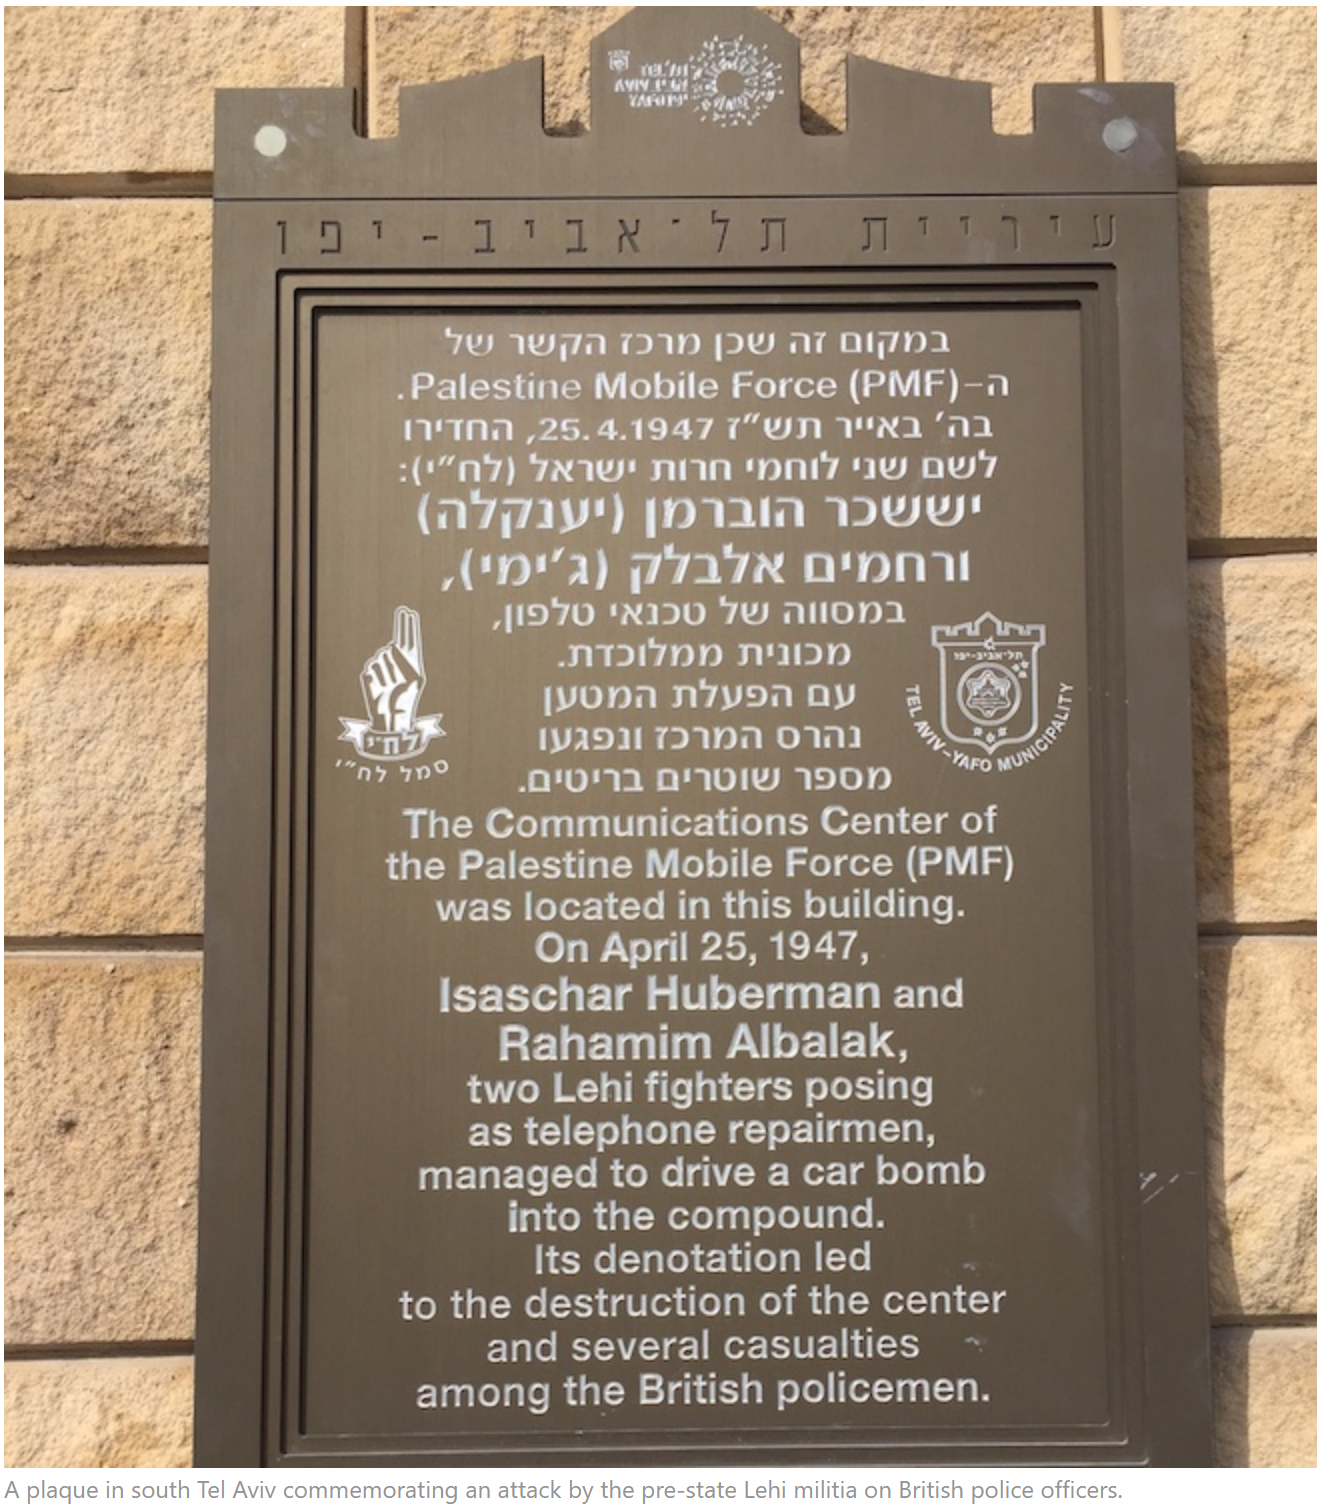 A plaque in south Tel Aviv commemorating an attack by the pre-state Lehi militia on British police officers.